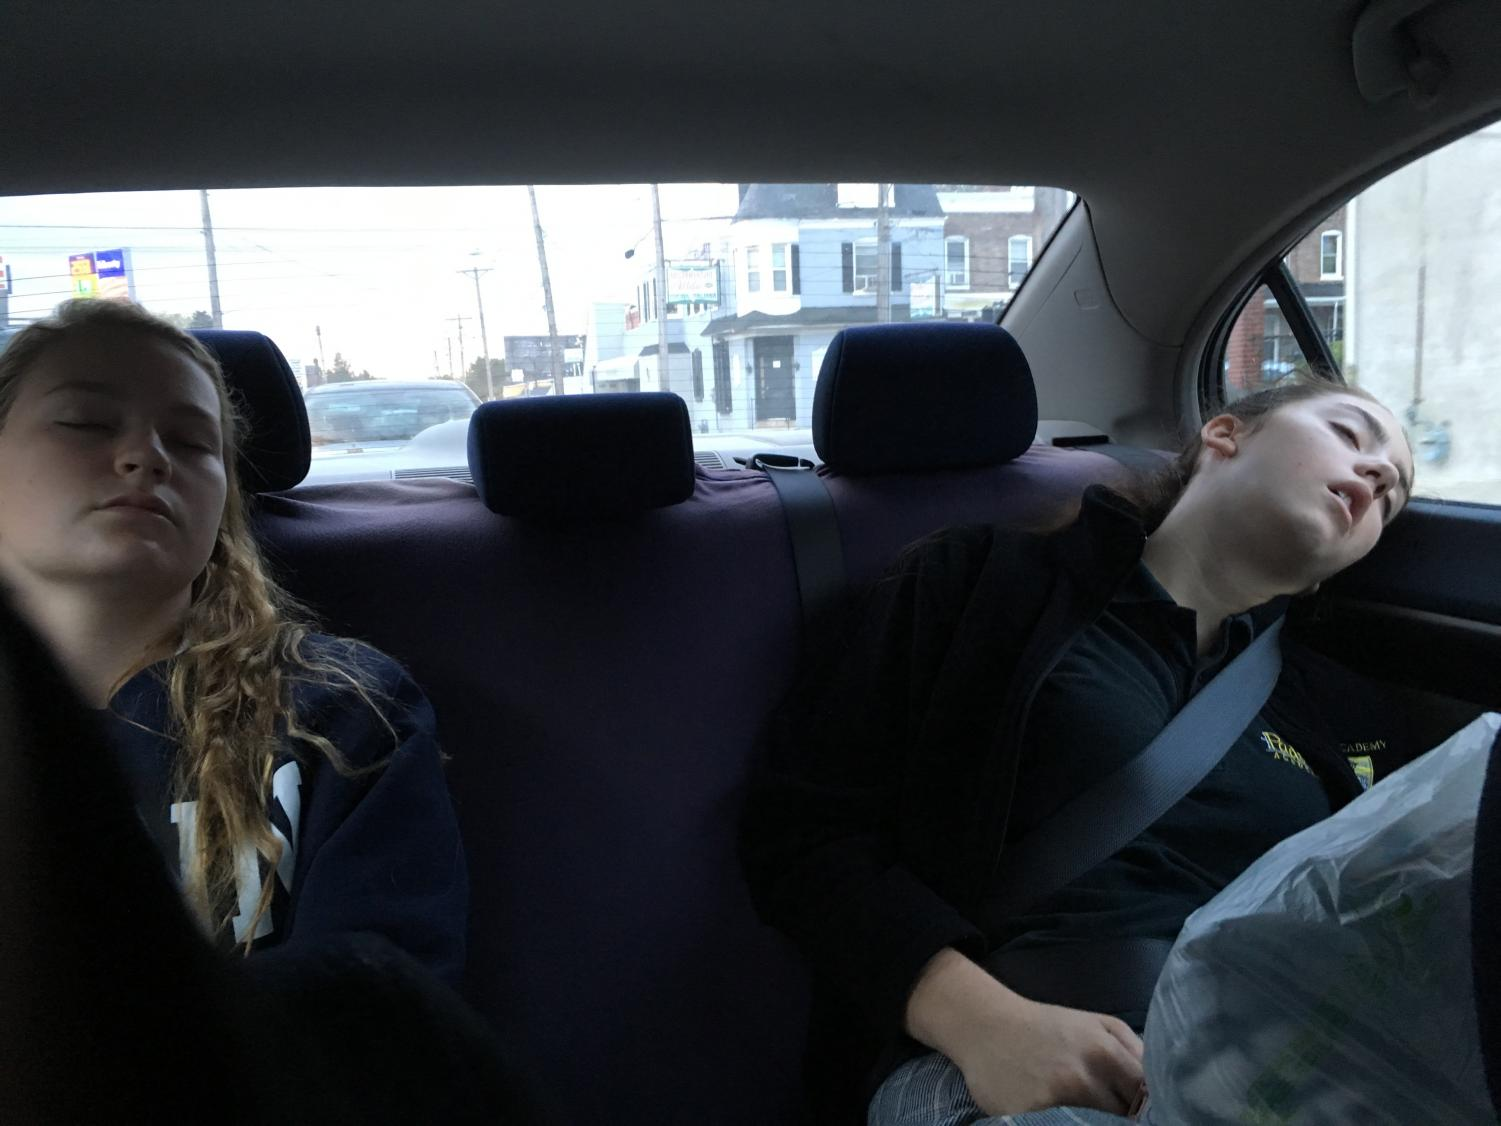 Juniors Tess Lunetta and Jess Molen sleep on the way to school. Many students find an early start to the day difficult after minimal sleep.